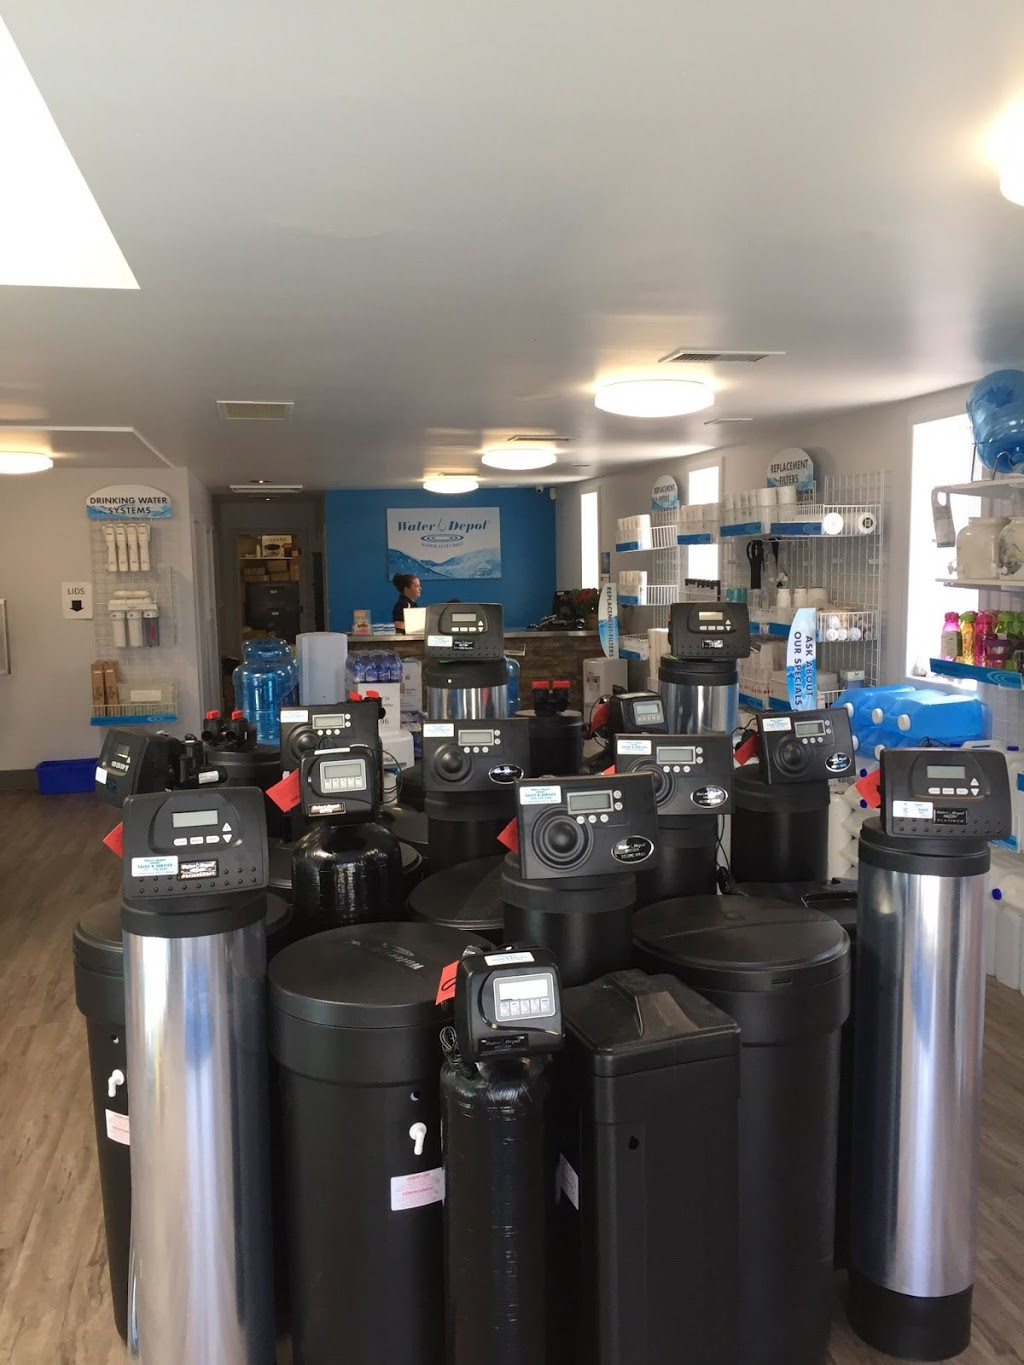 Water Depot Barrie Essa Rd | store | 70 Essa Rd, Barrie, ON L4N 3K7, Canada | 7057223242 OR +1 705-722-3242